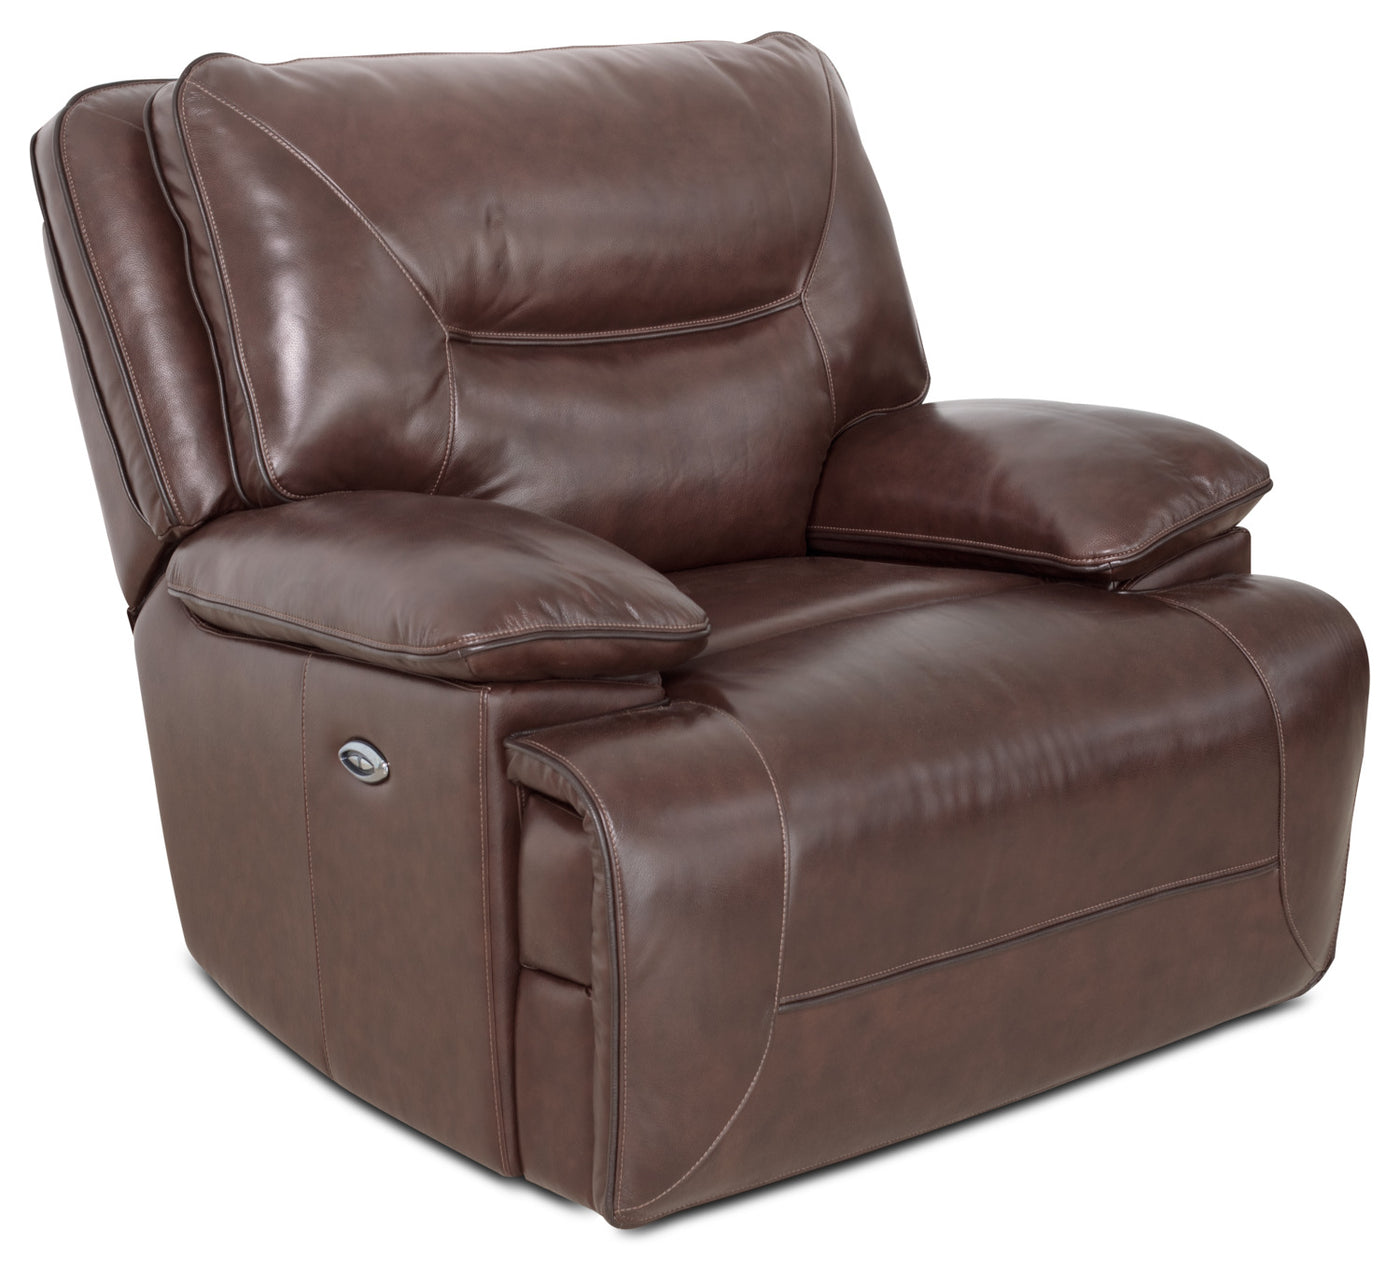 Beau Genuine Leather Power Reclining Chair – Burgundy